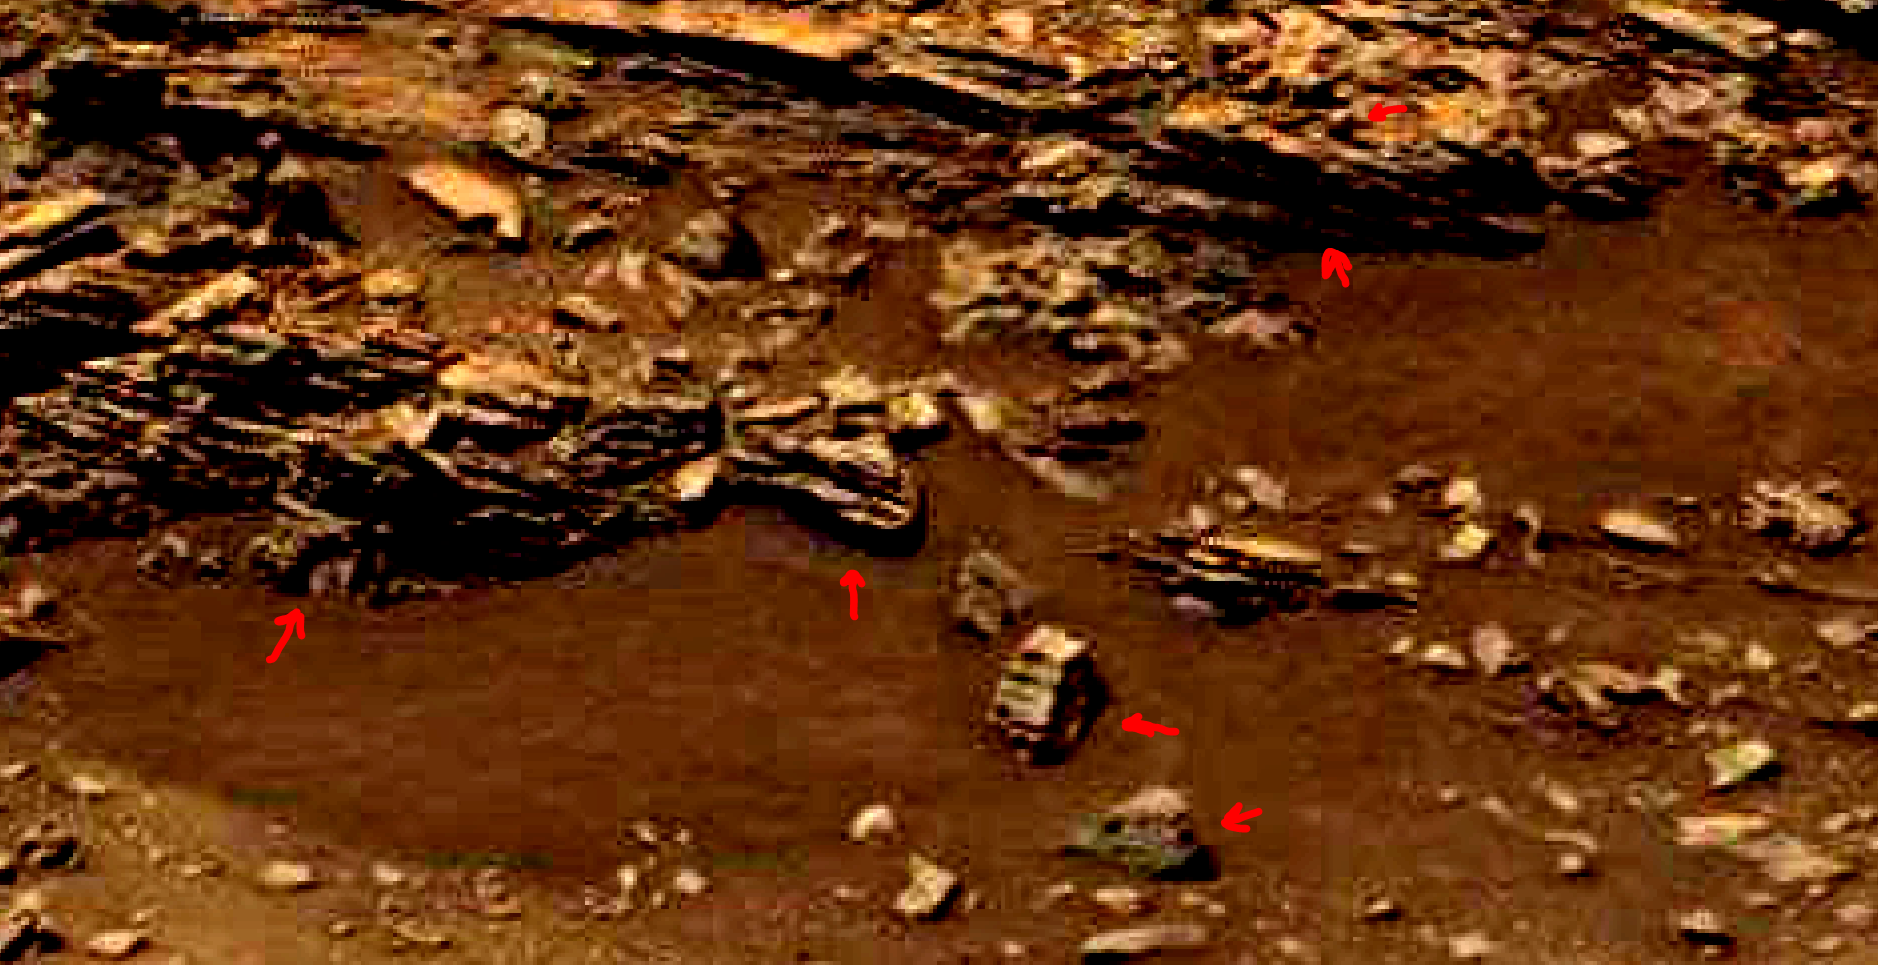 mars-sol-1463-anomaly-artifacts-26-was-life-on-mars